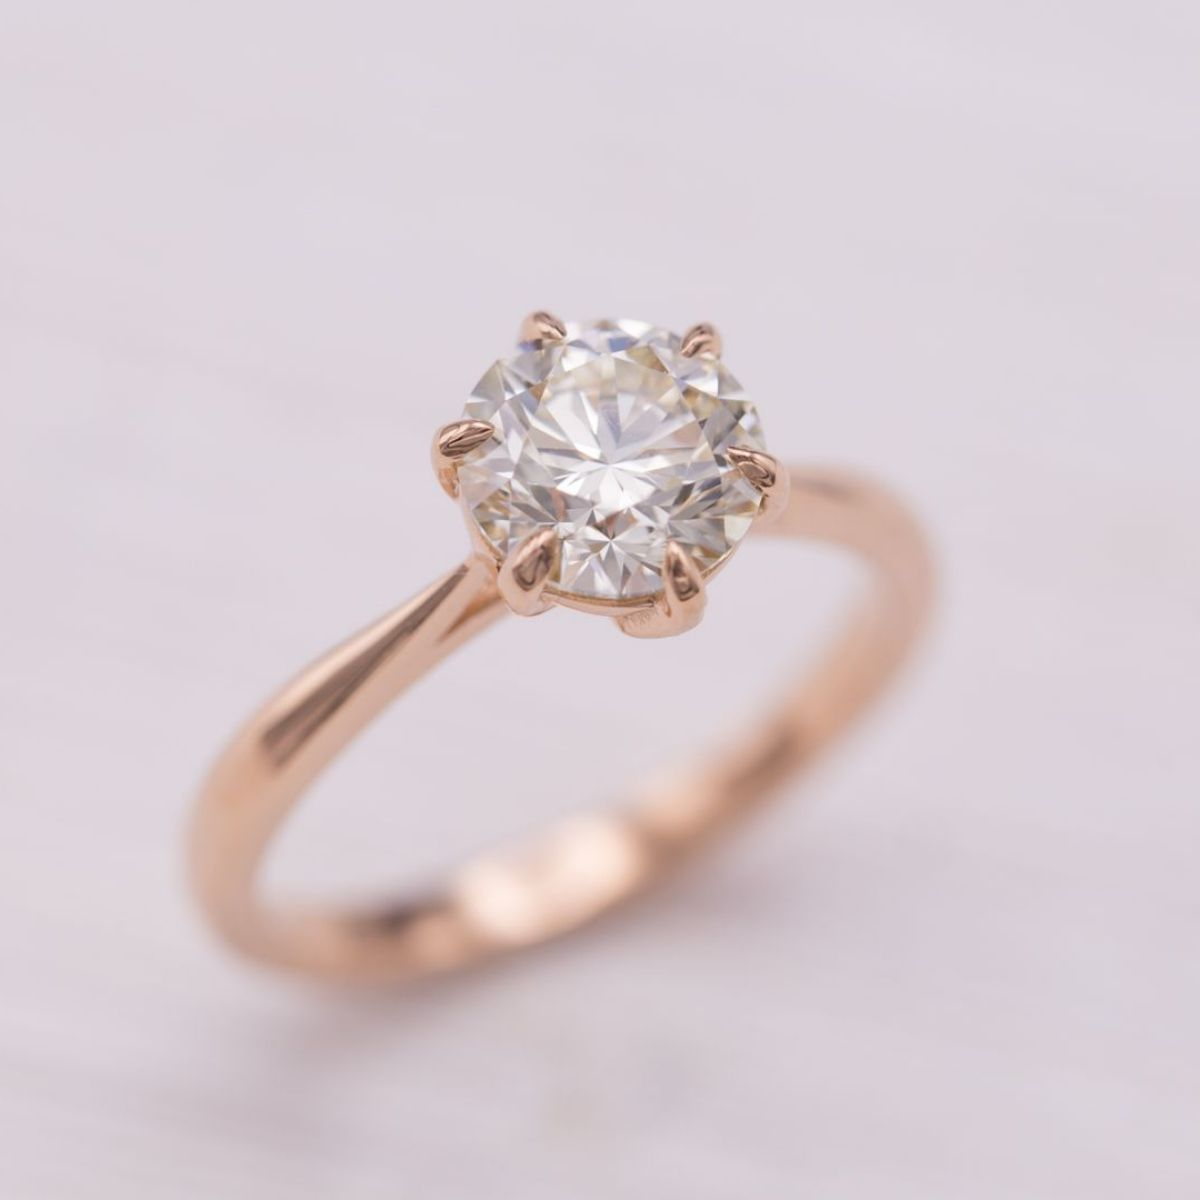 Design Your Own Ring: Design Your Own Engagement Ring